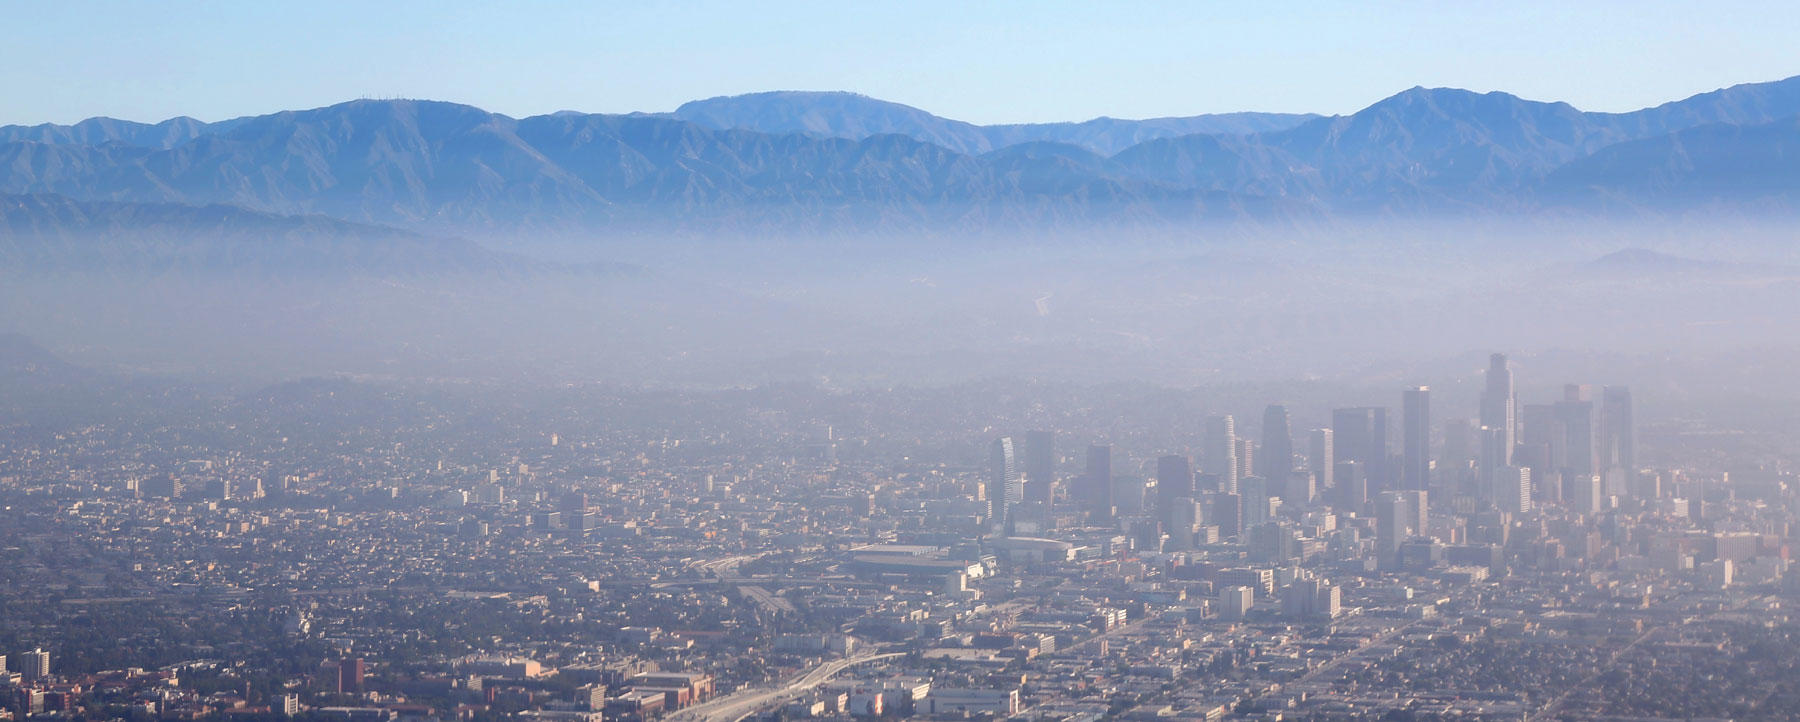 Los Angeles Downtown Aerial View and smog